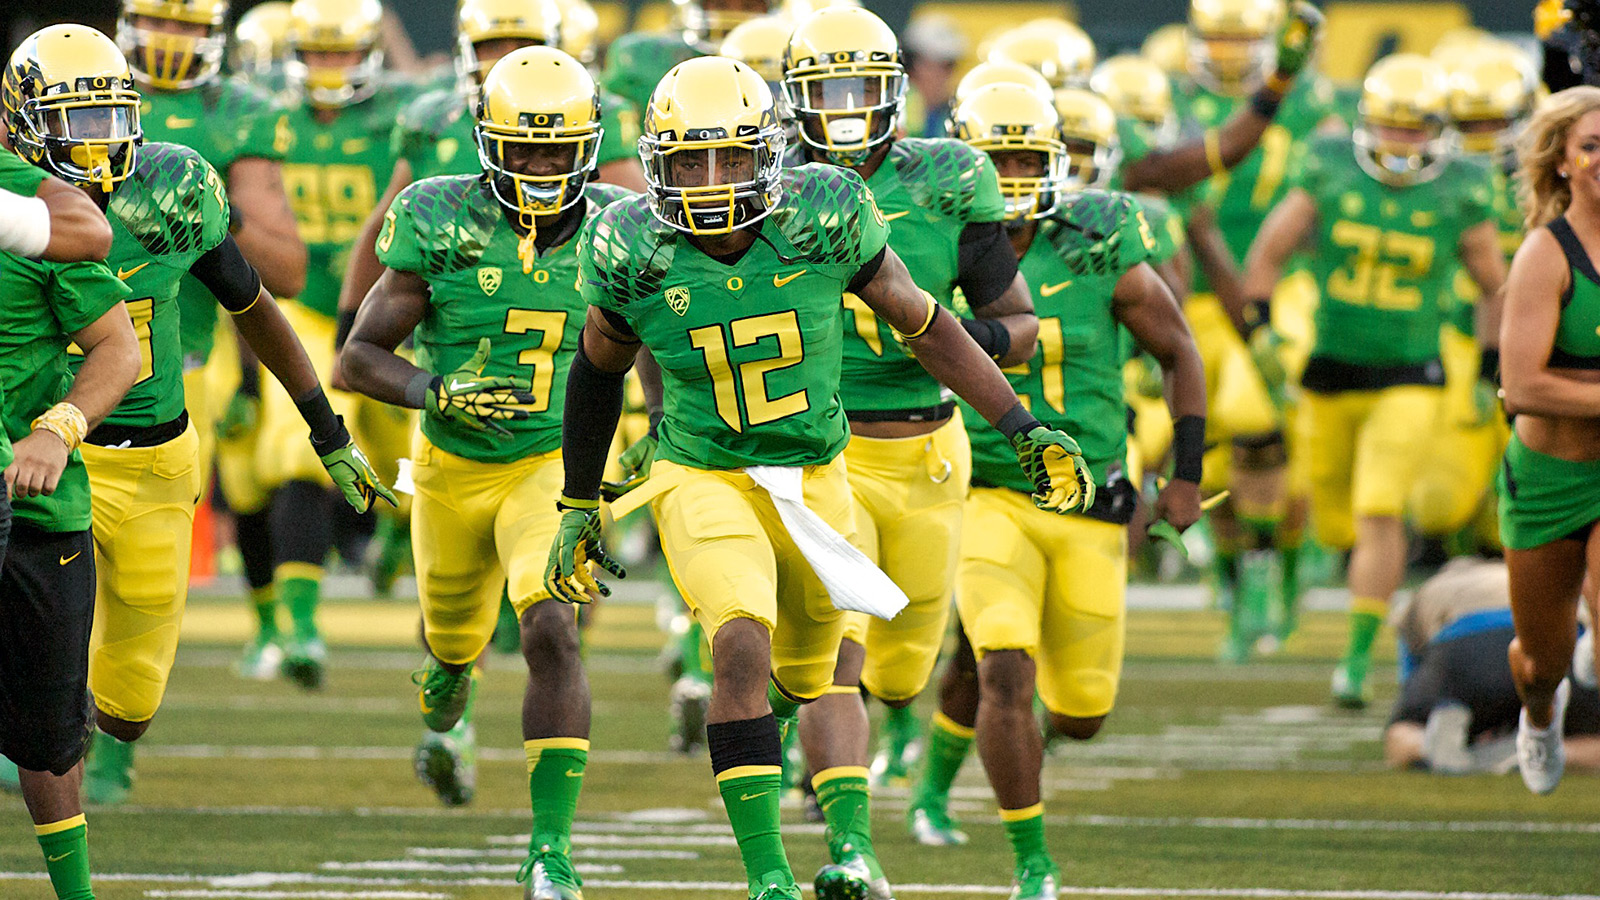 102314-CBK-Best-Oregon-jerseys-TV-G13